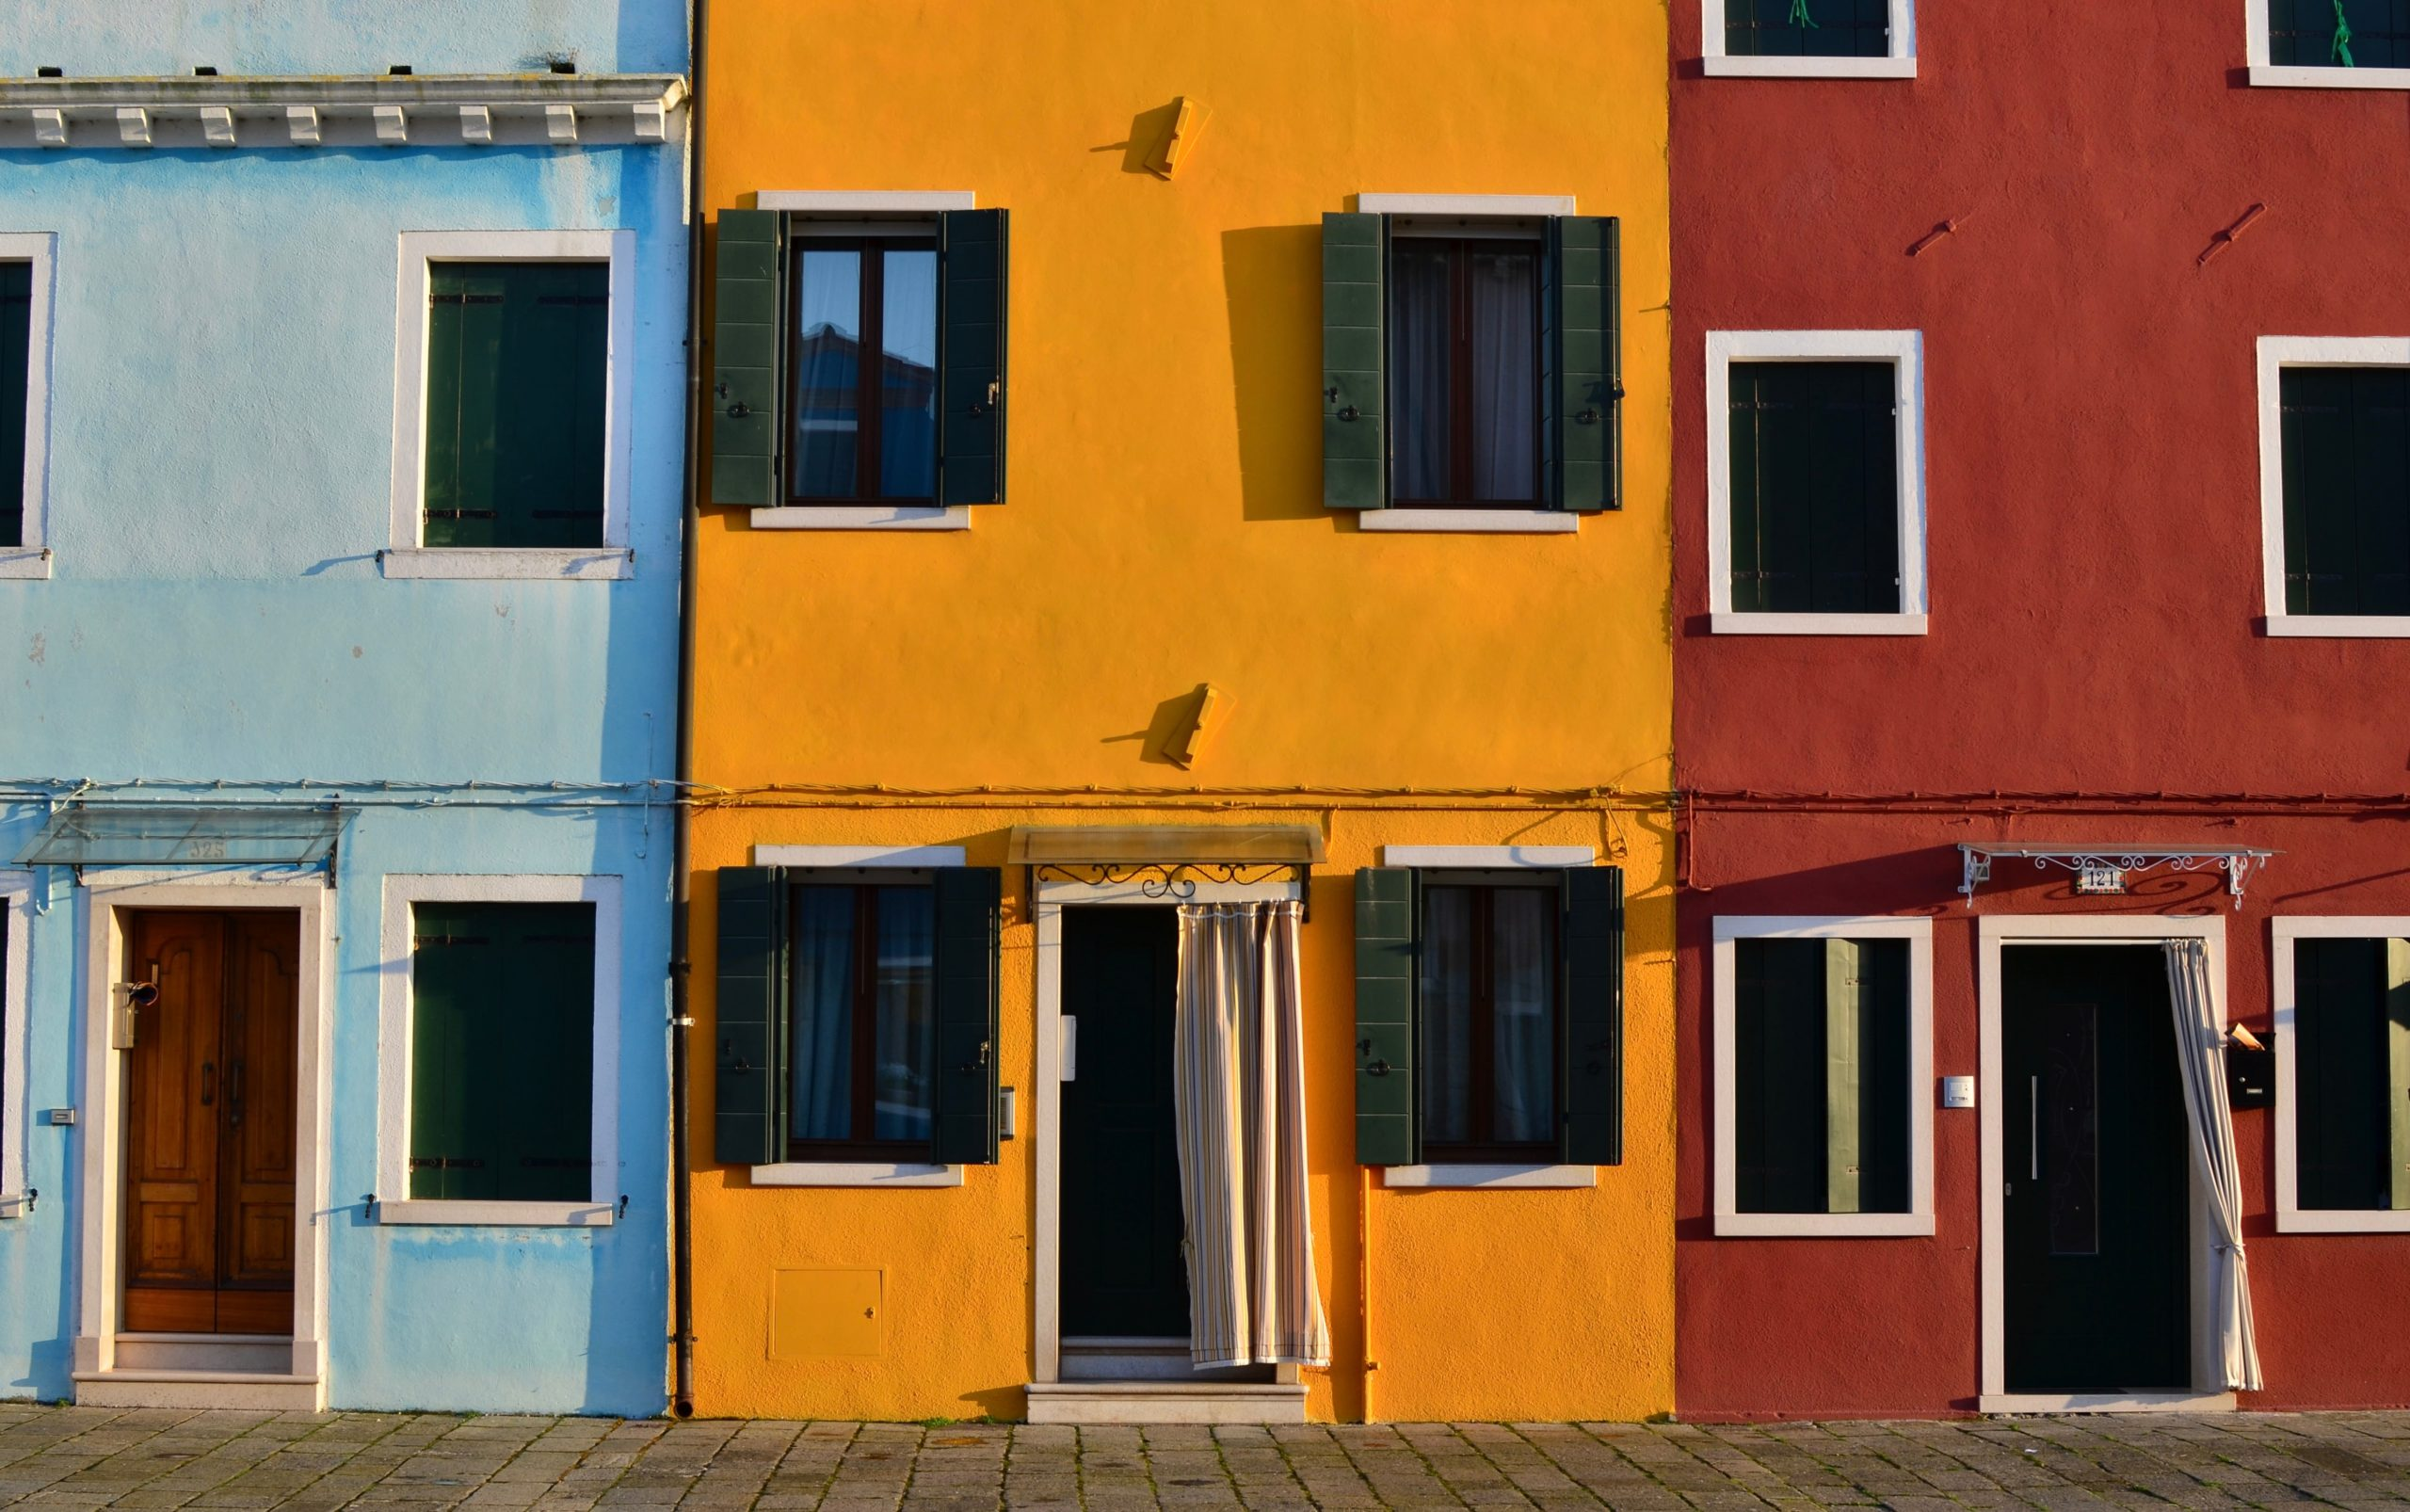 colorful houses built close together